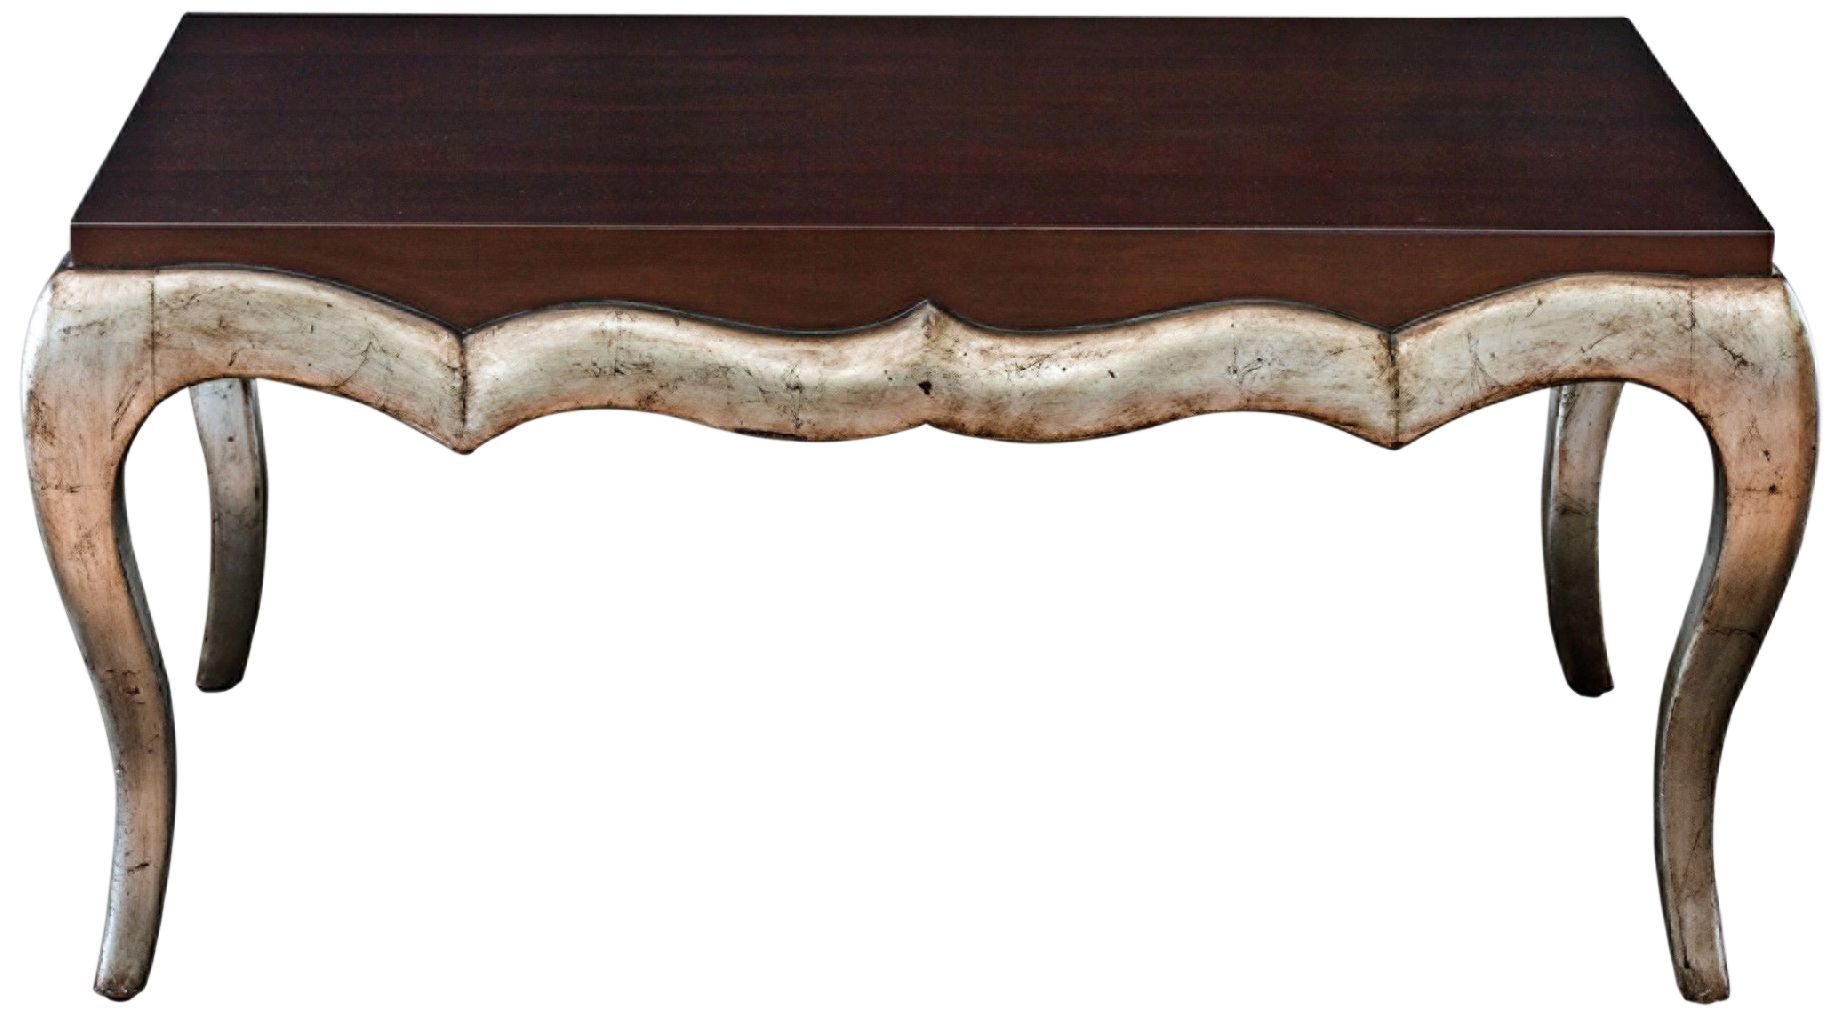 Verena Dark Mahogany Stained Top Silver Leaf Coffee Table